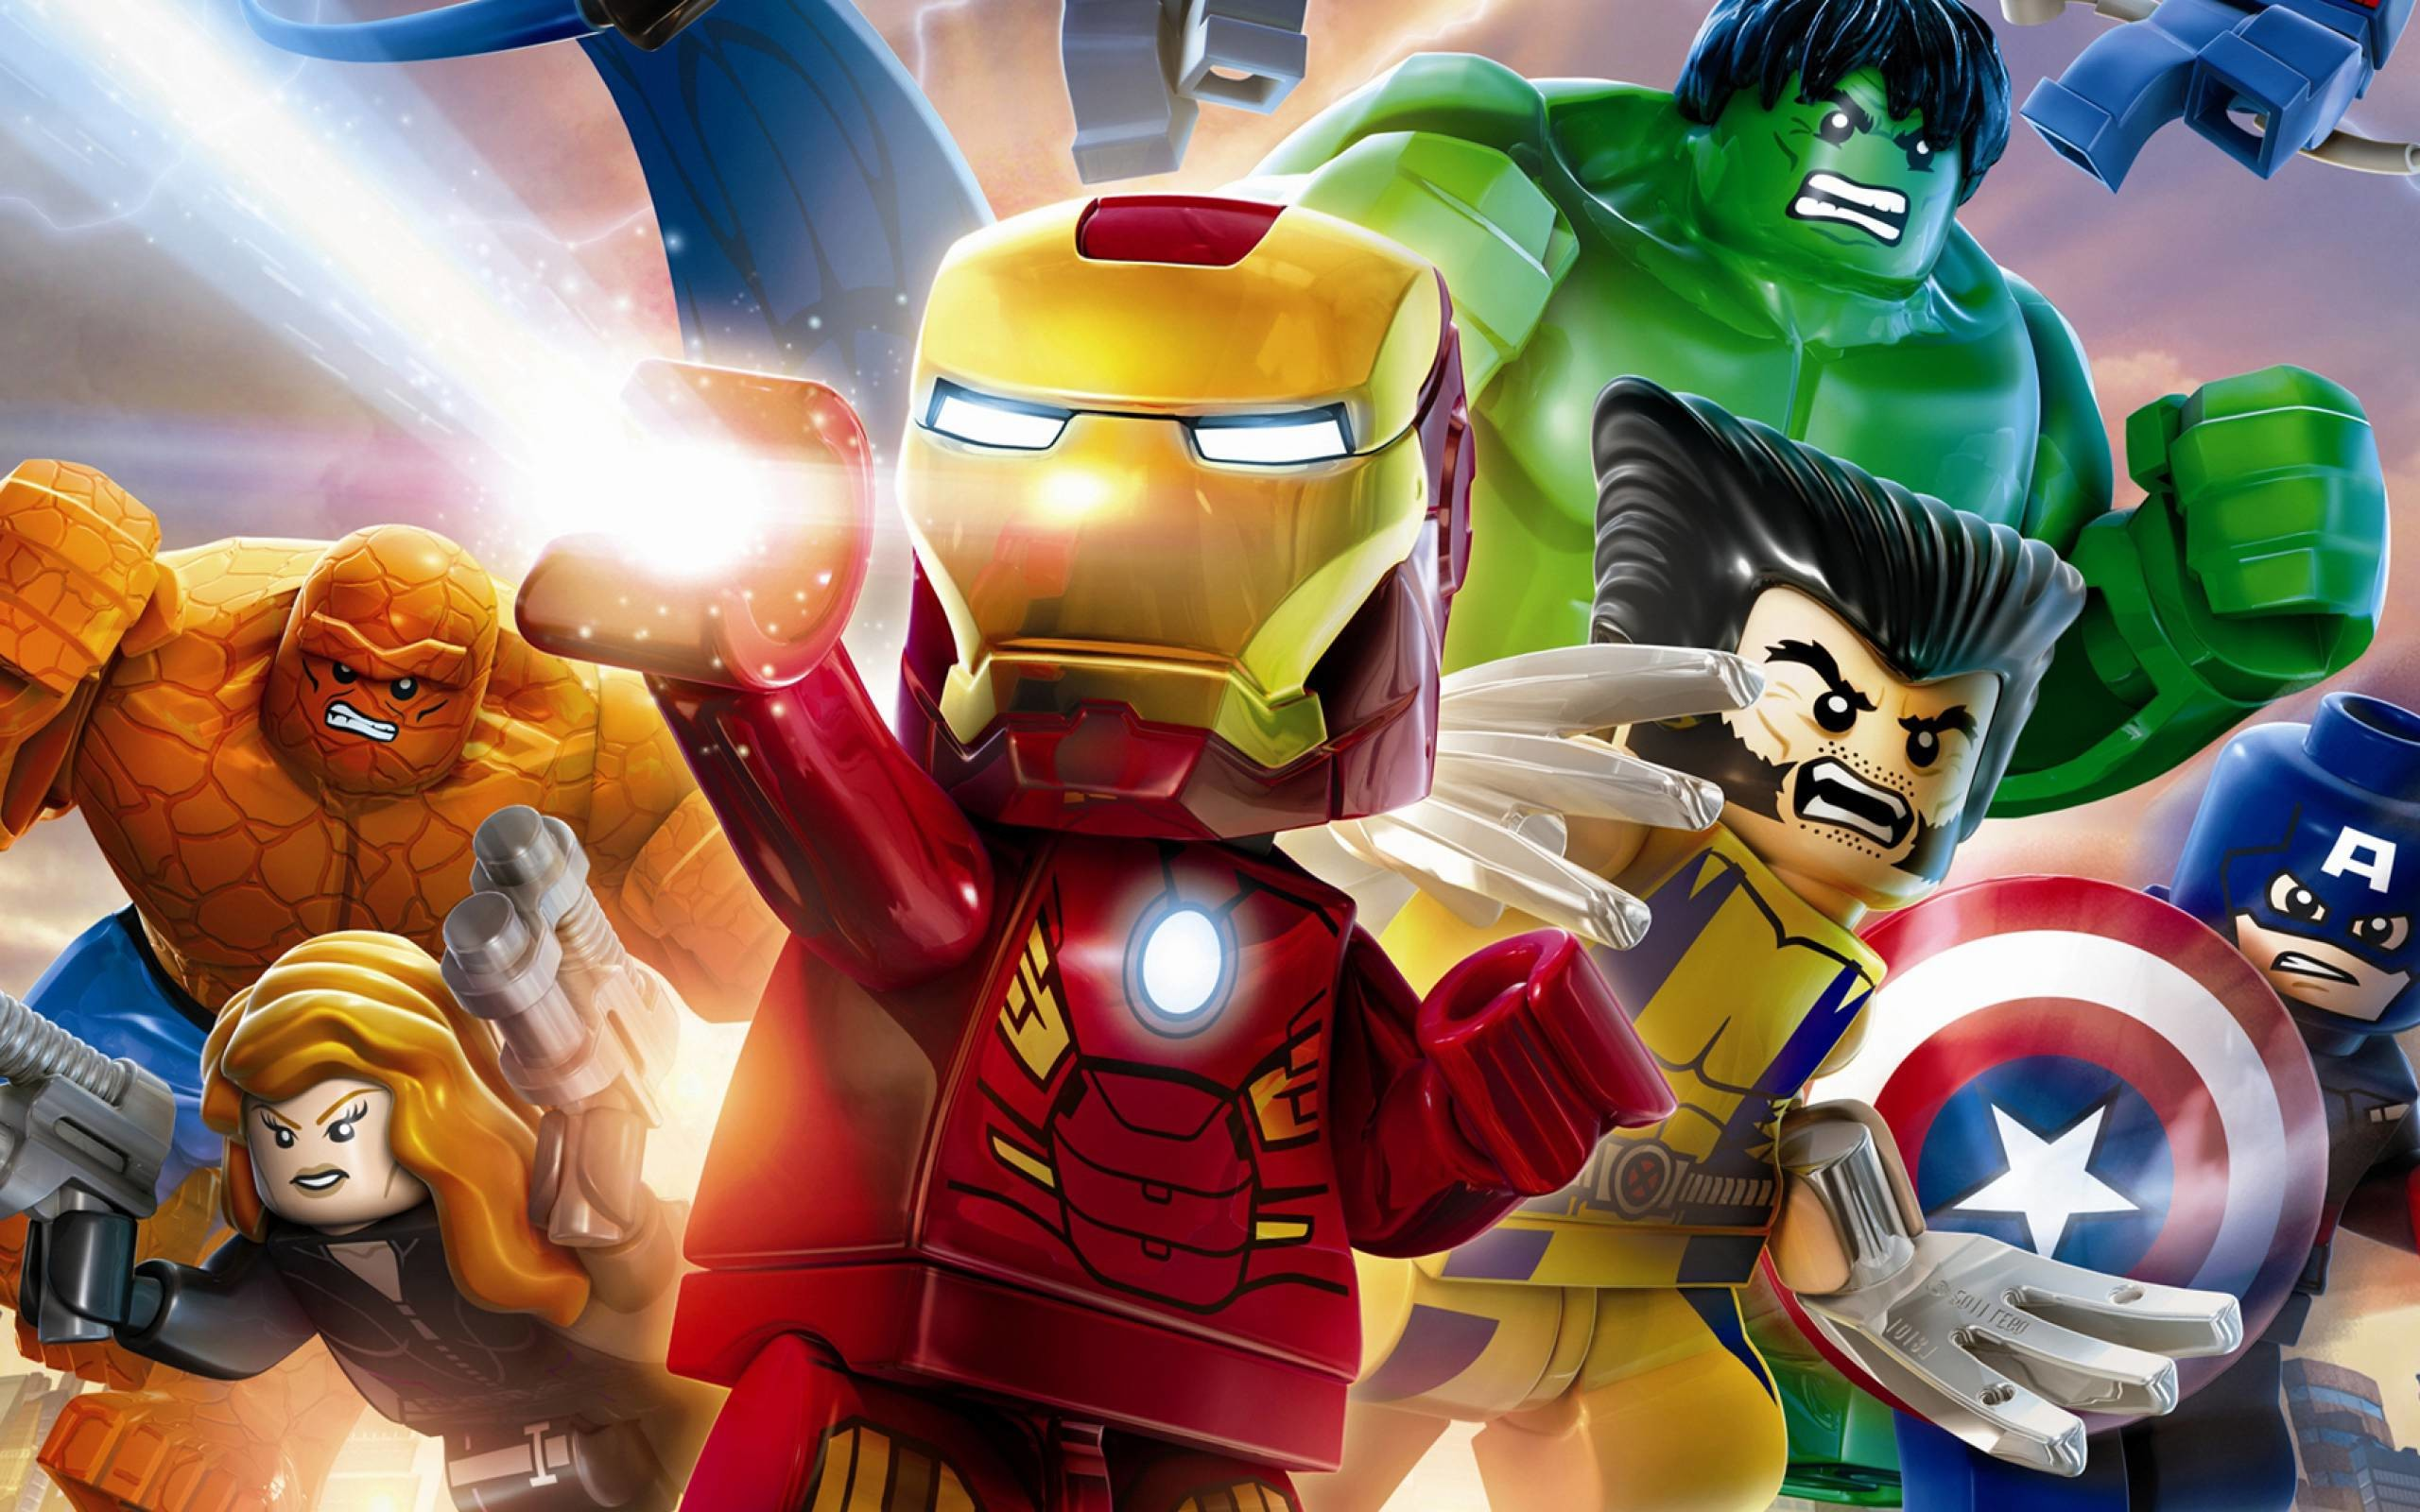 2560x1600 Lego Marvel Superhero Wallpaper HQ Resolution #56341 - Ehiyo.